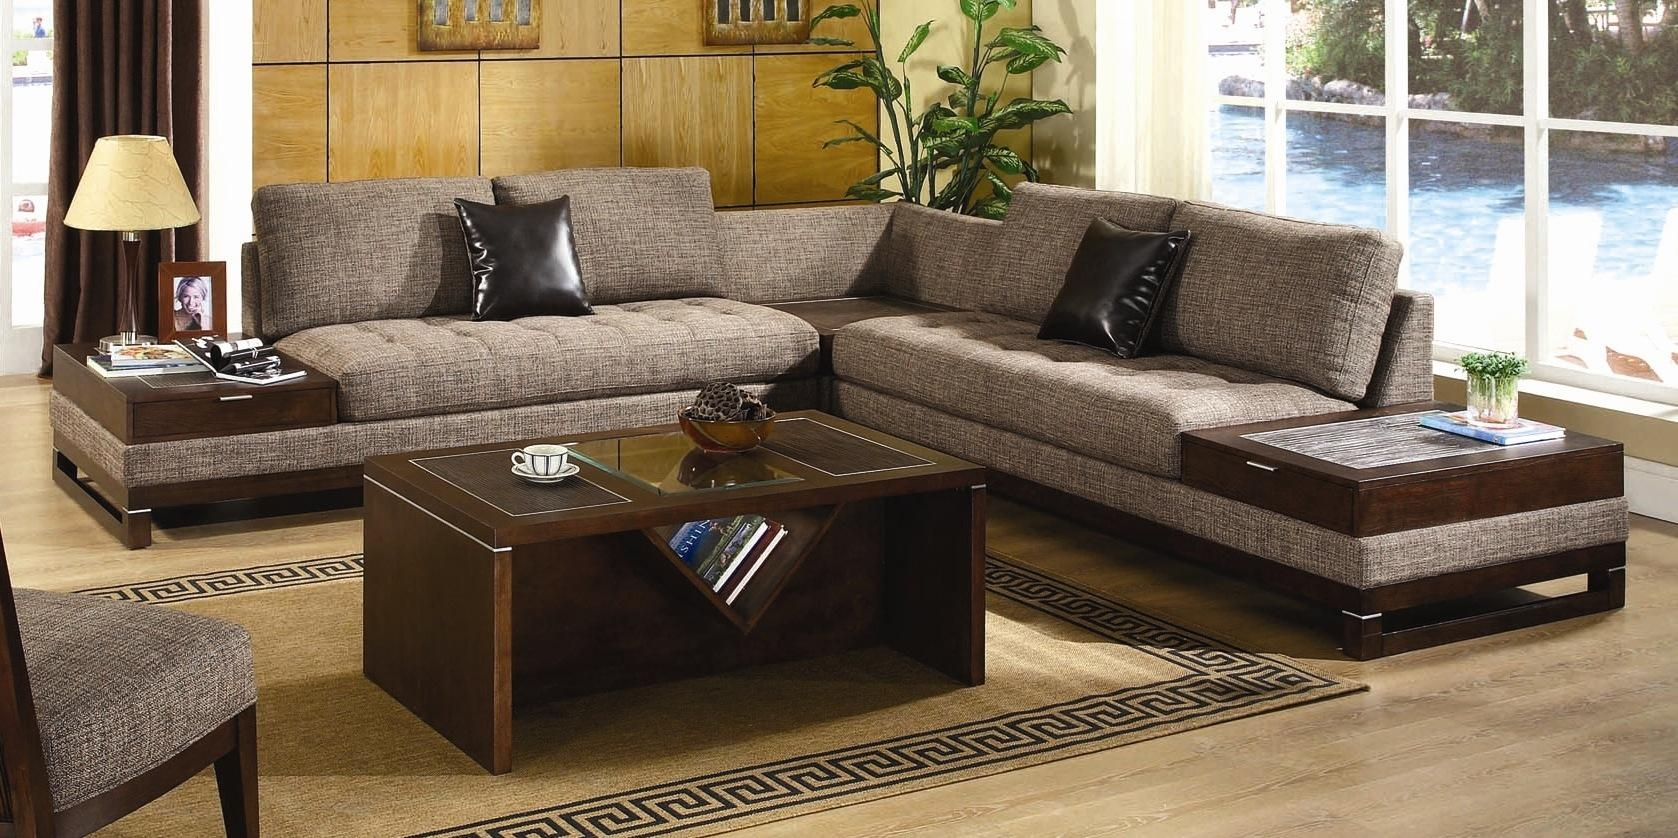 Sofa Furniture Discount Intended For Warm – Artdreamshome For Living Room Sofa Chairs (Image 19 of 20)